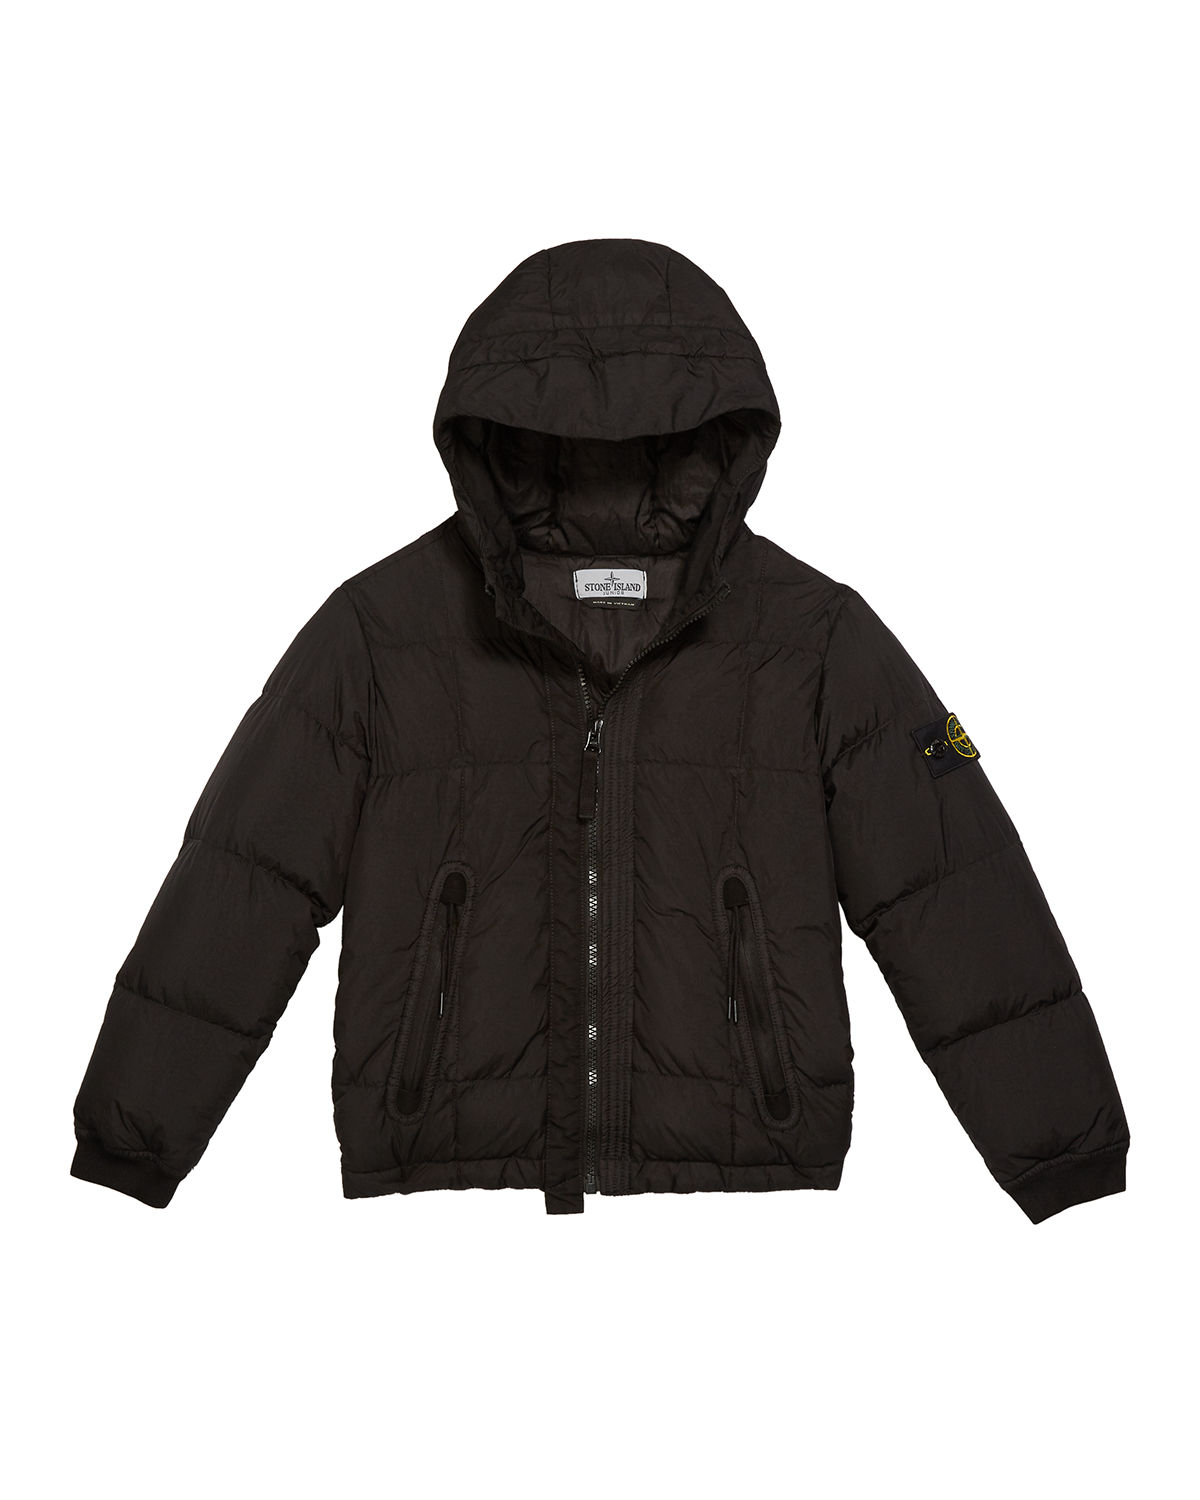 Stone Island Down Puffer Jacket with Hood, Size 2-6